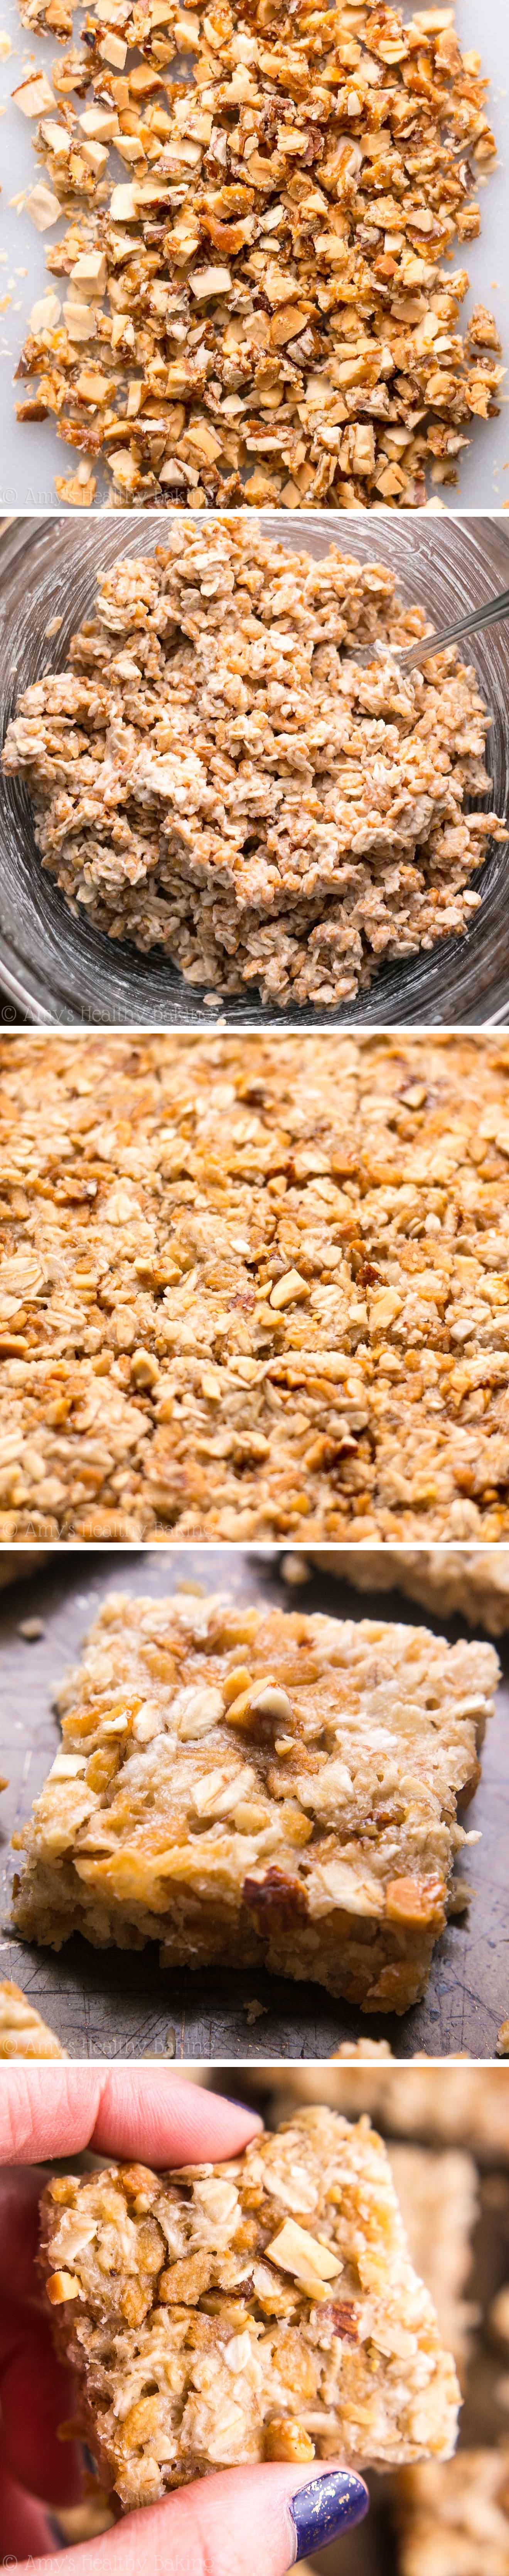 These healthy granola bars taste like banana nut muffins! So easy, so good & just 35 calories! Perfect for grab-and-go snacks!